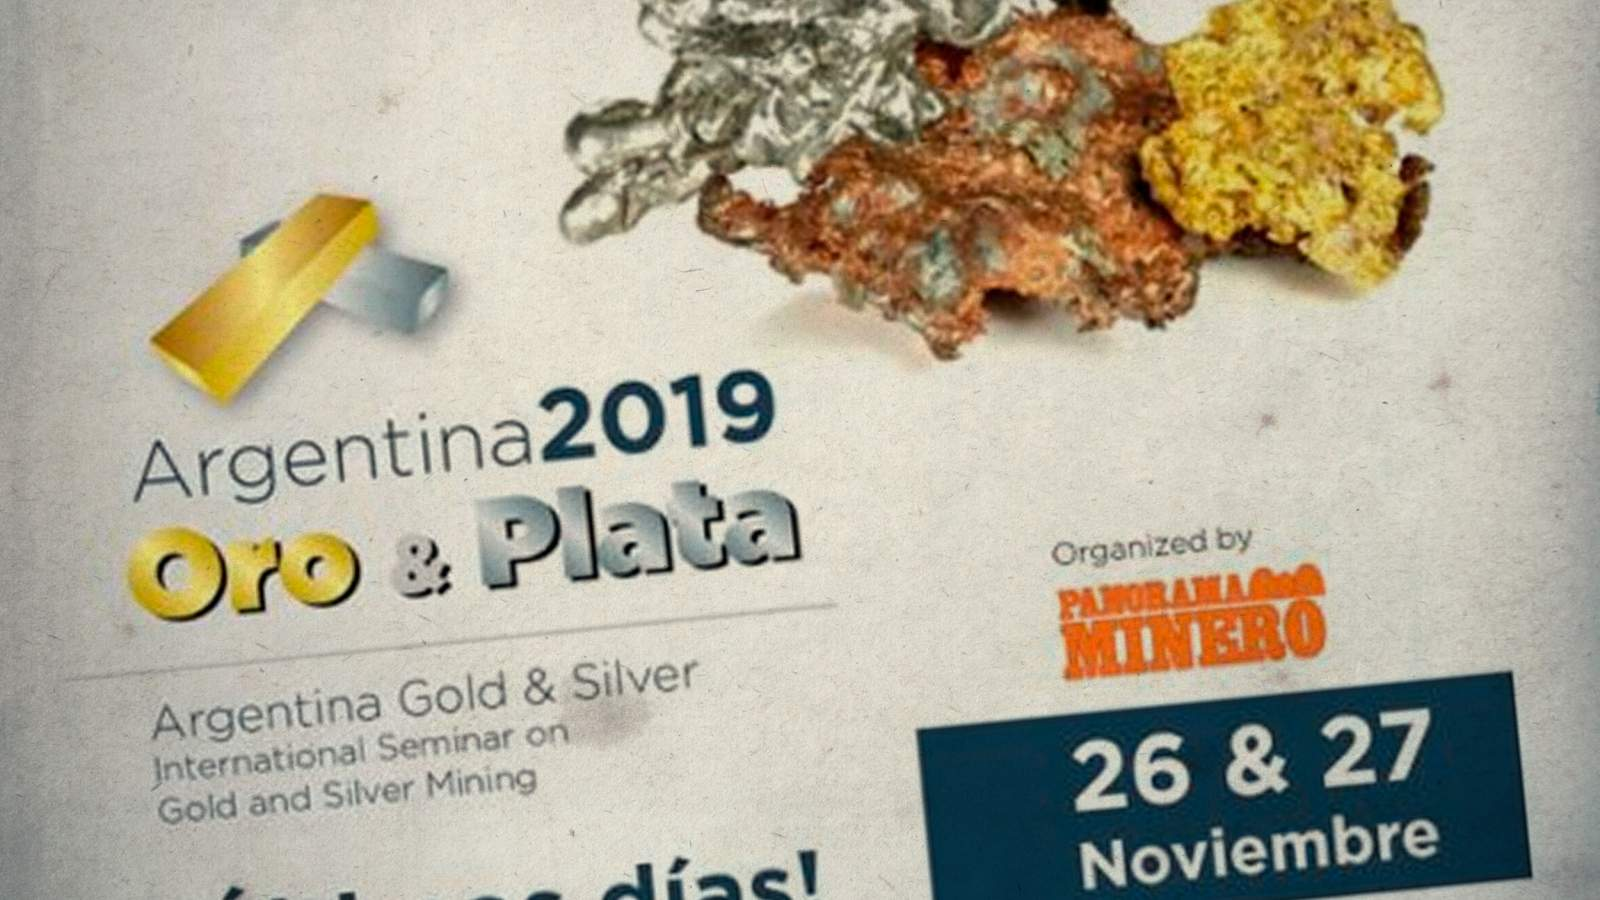 SAXUM-present-at-the-International-Seminar-on-Gold--Silver-Mining-2019